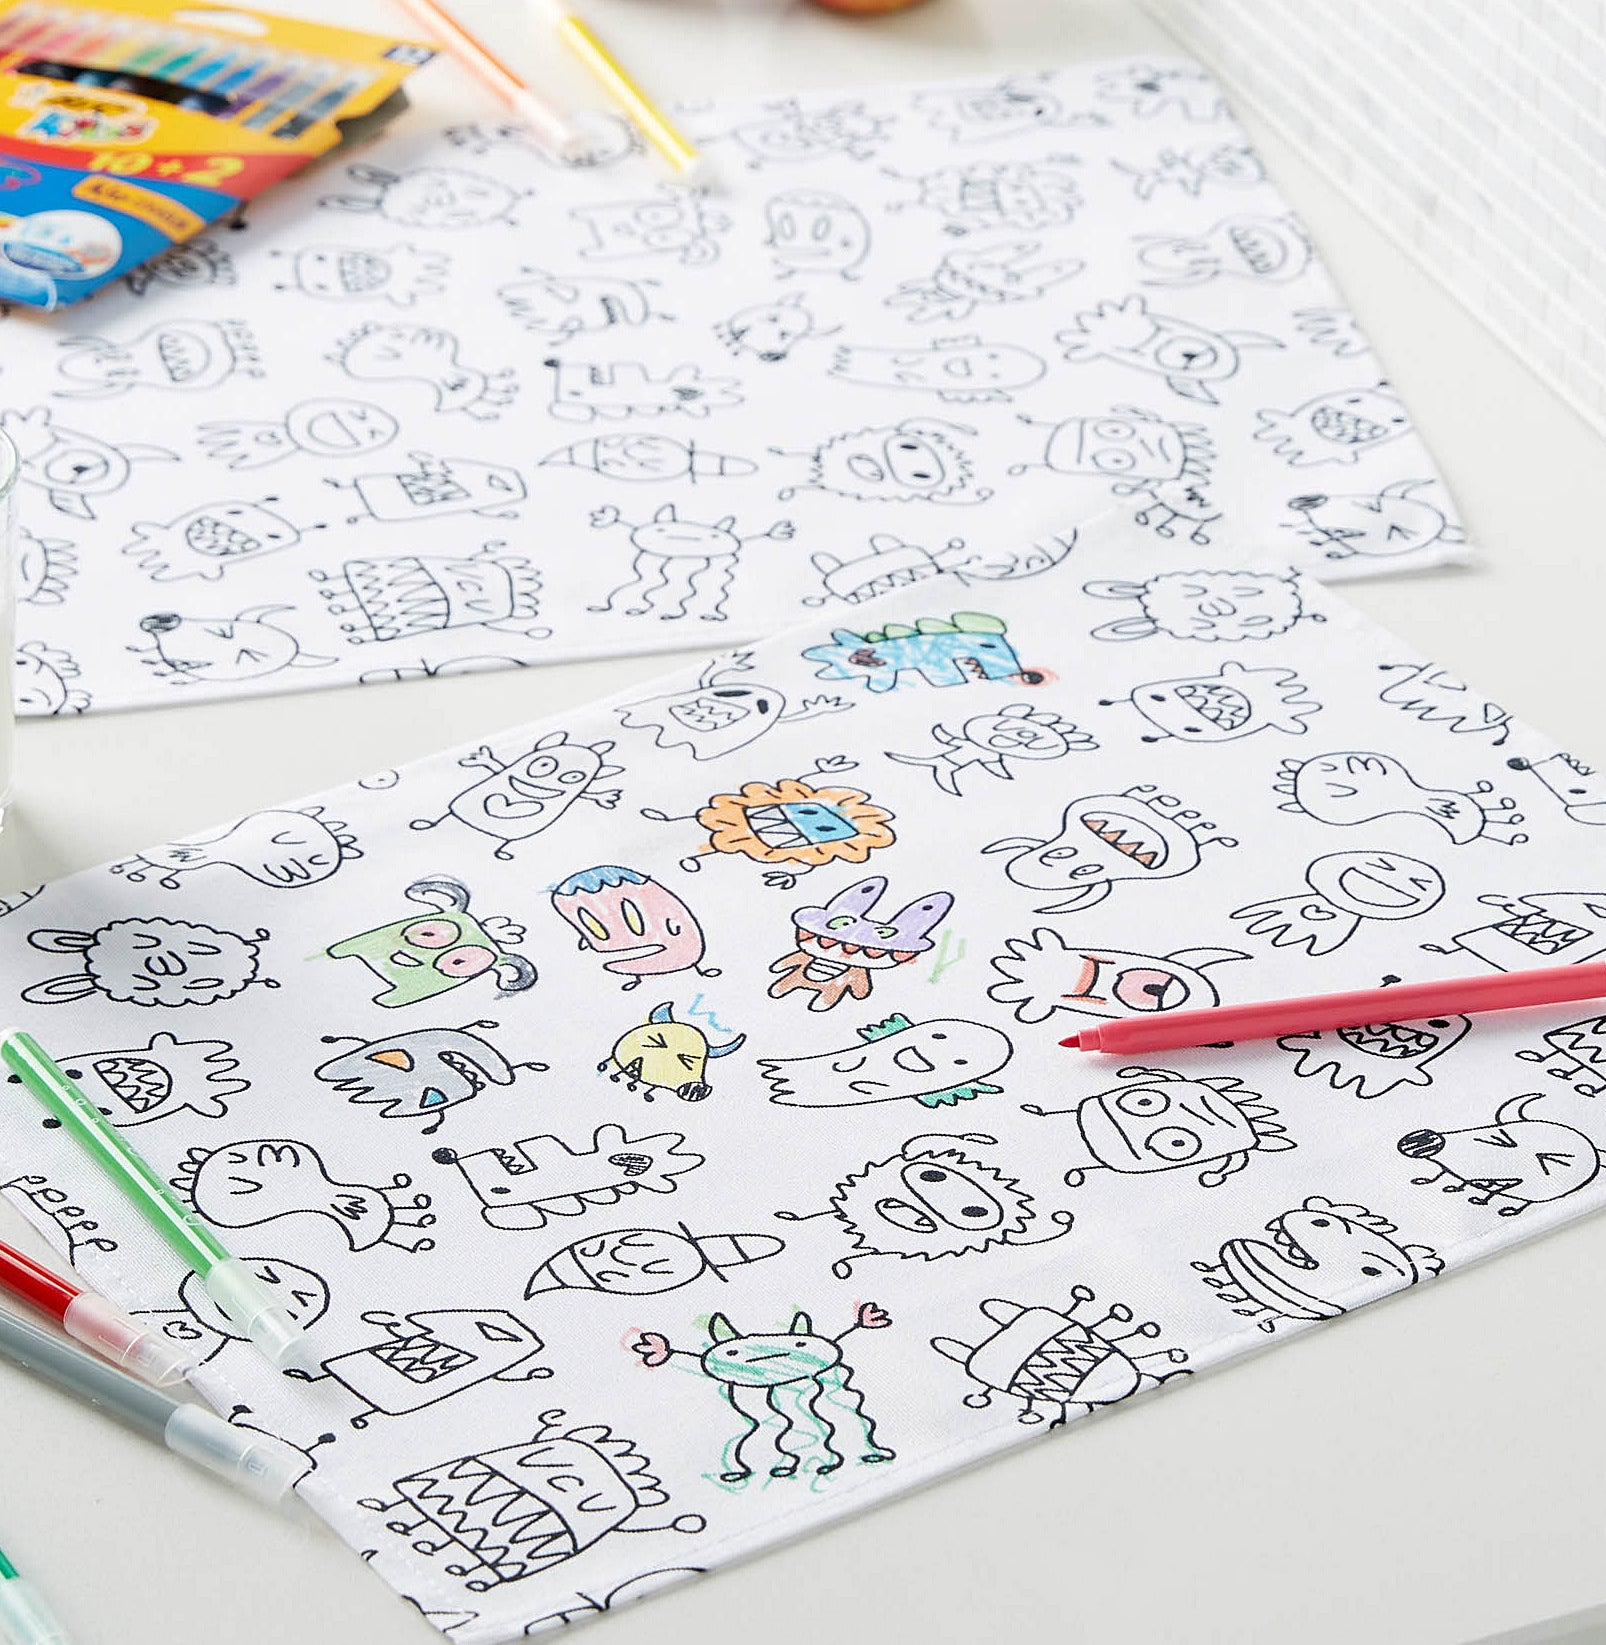 Two colour-in placemats with markers on top of them